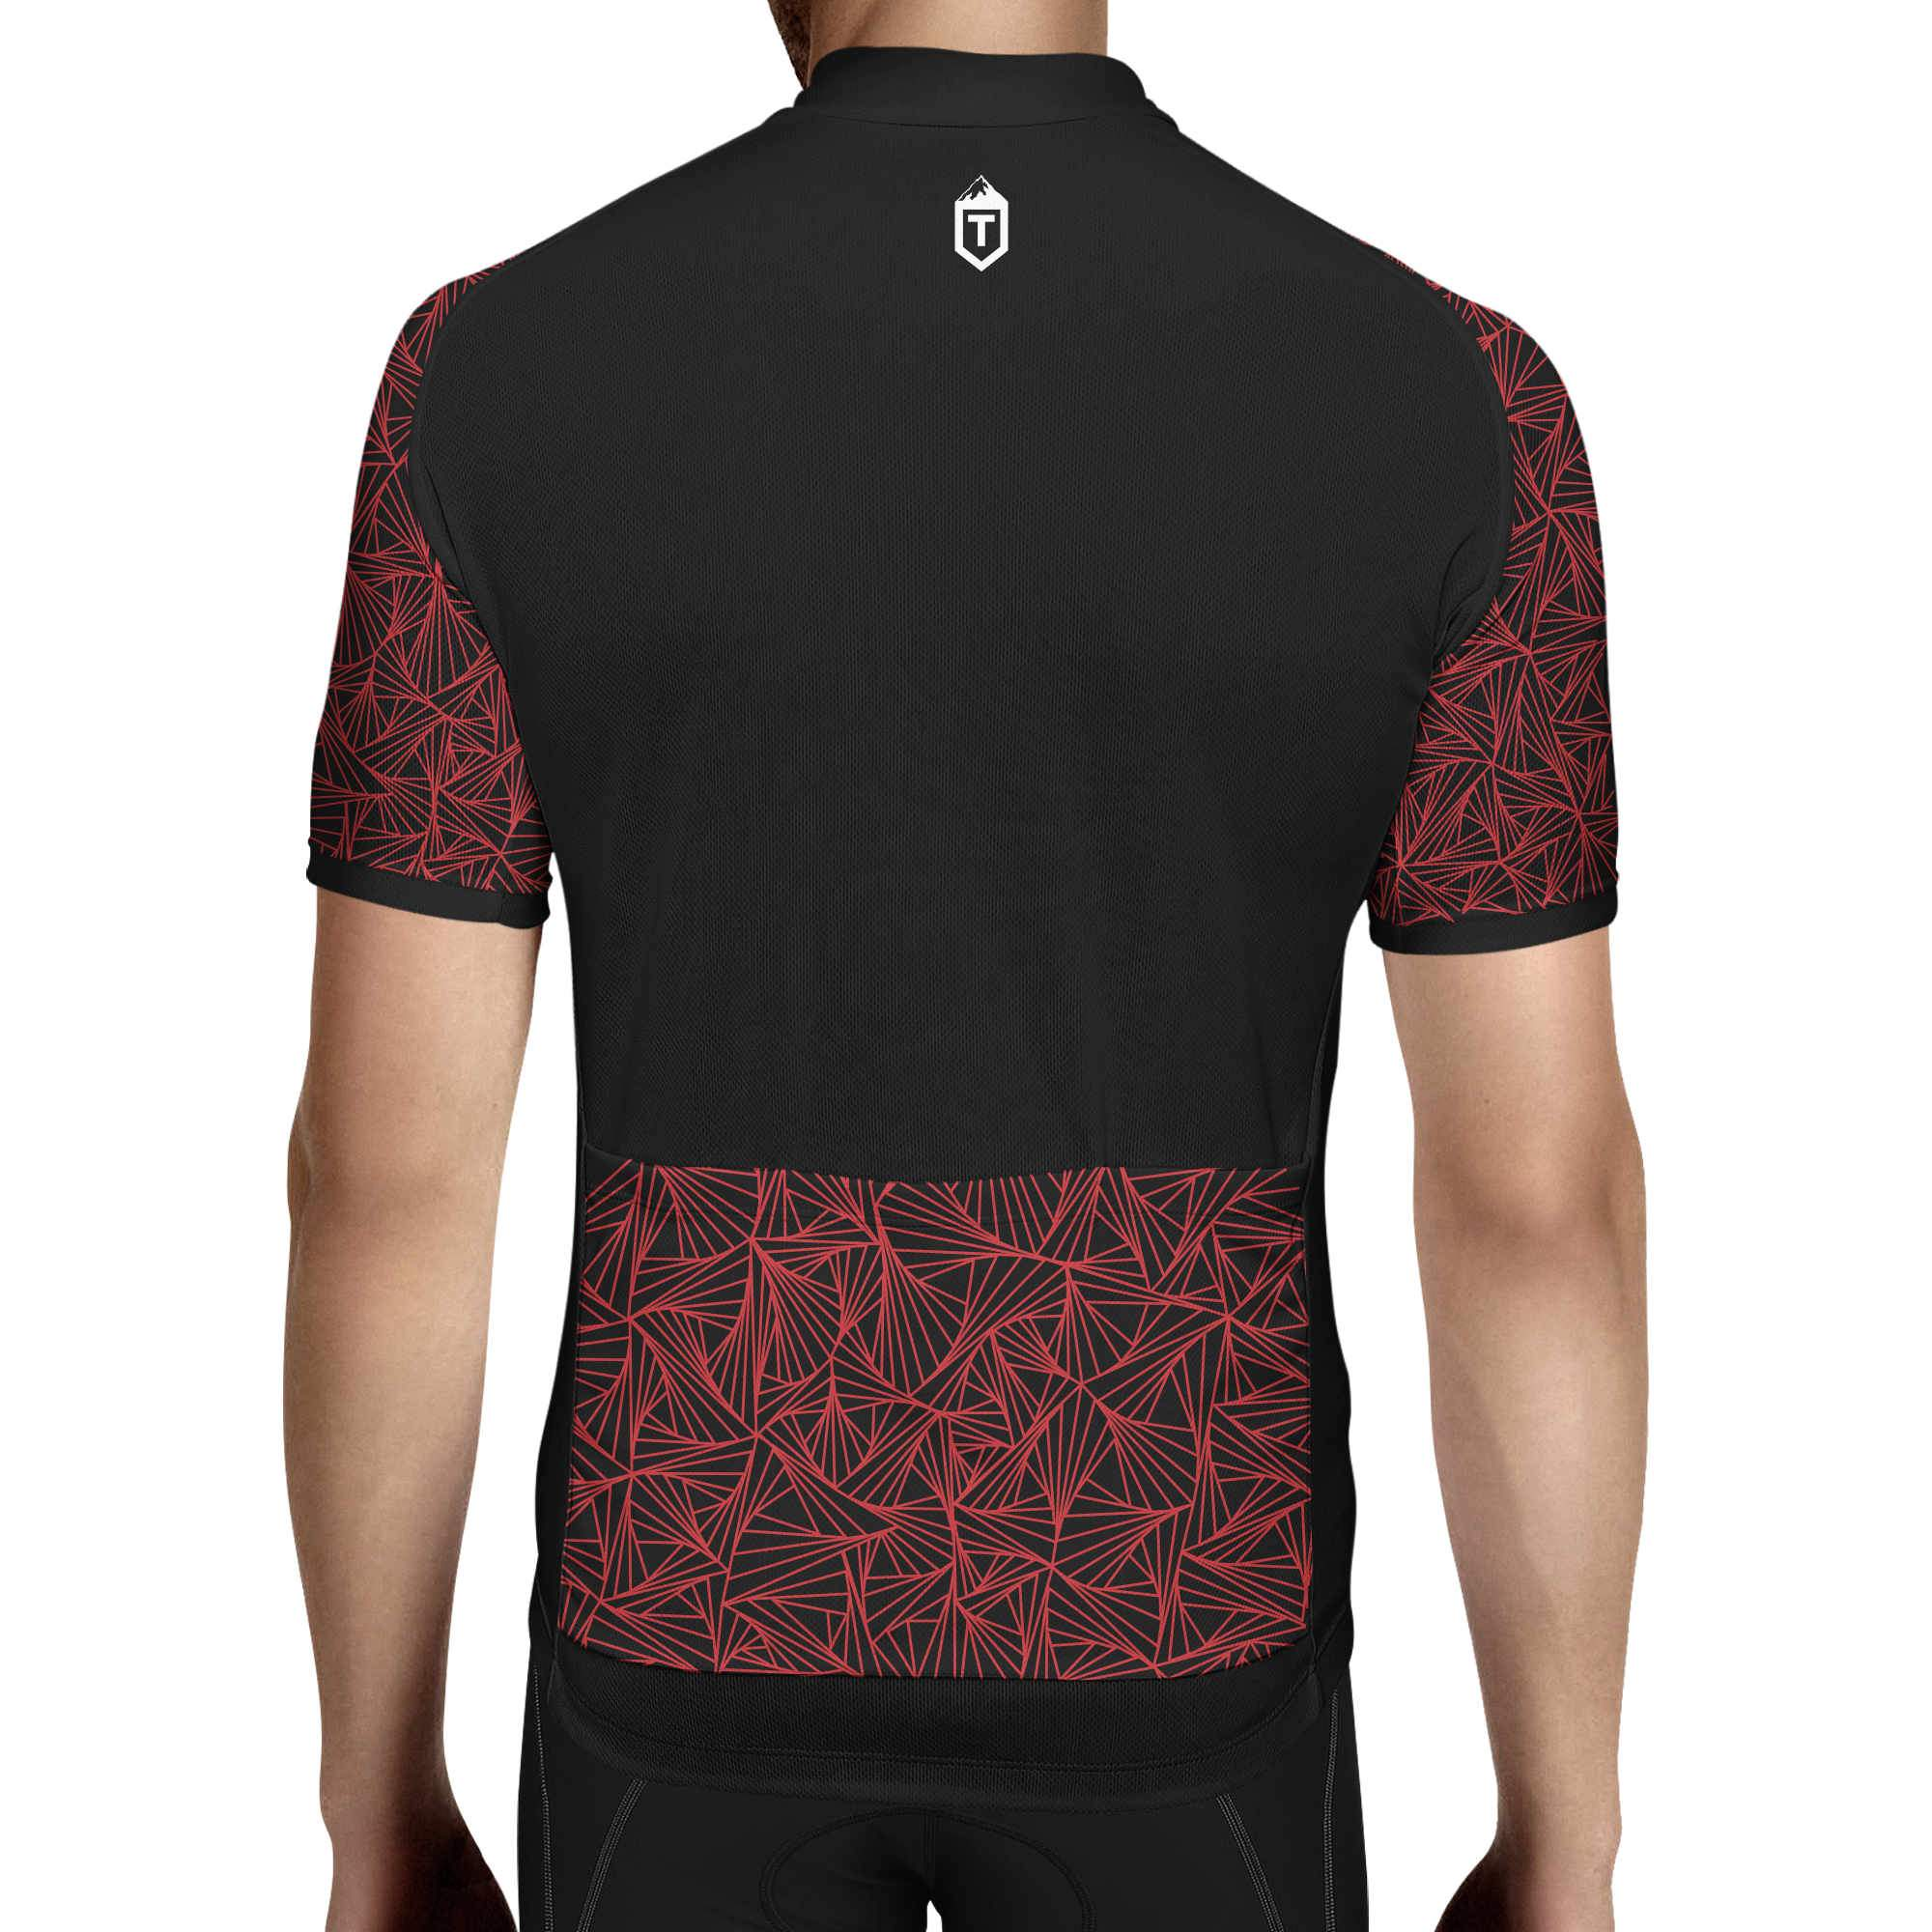 Triangles Jersey - Black / Red - The Tempests Store